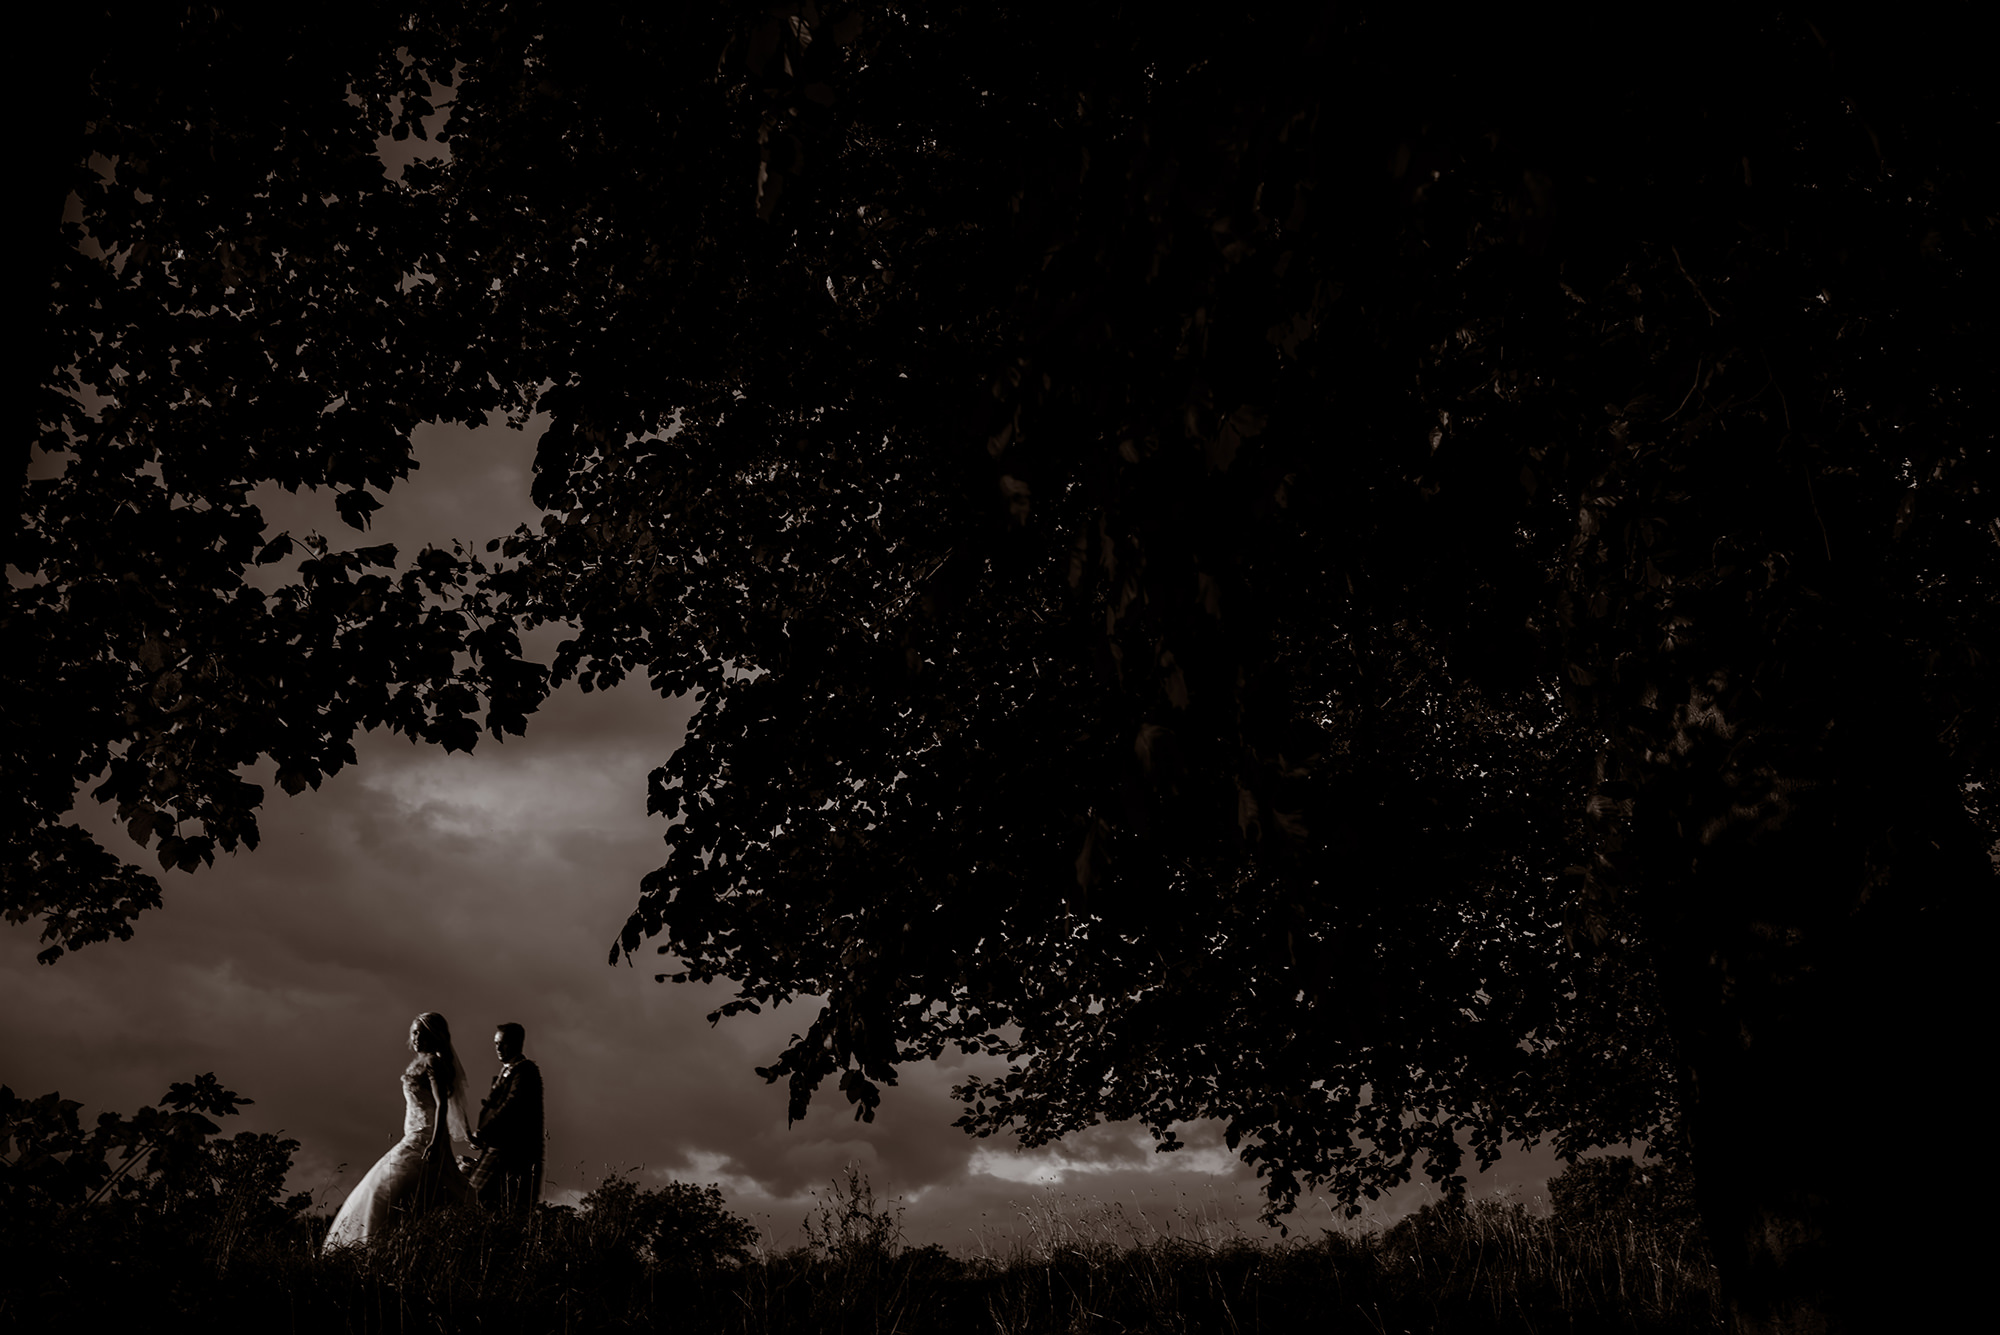 artistic wedding photography glasgow